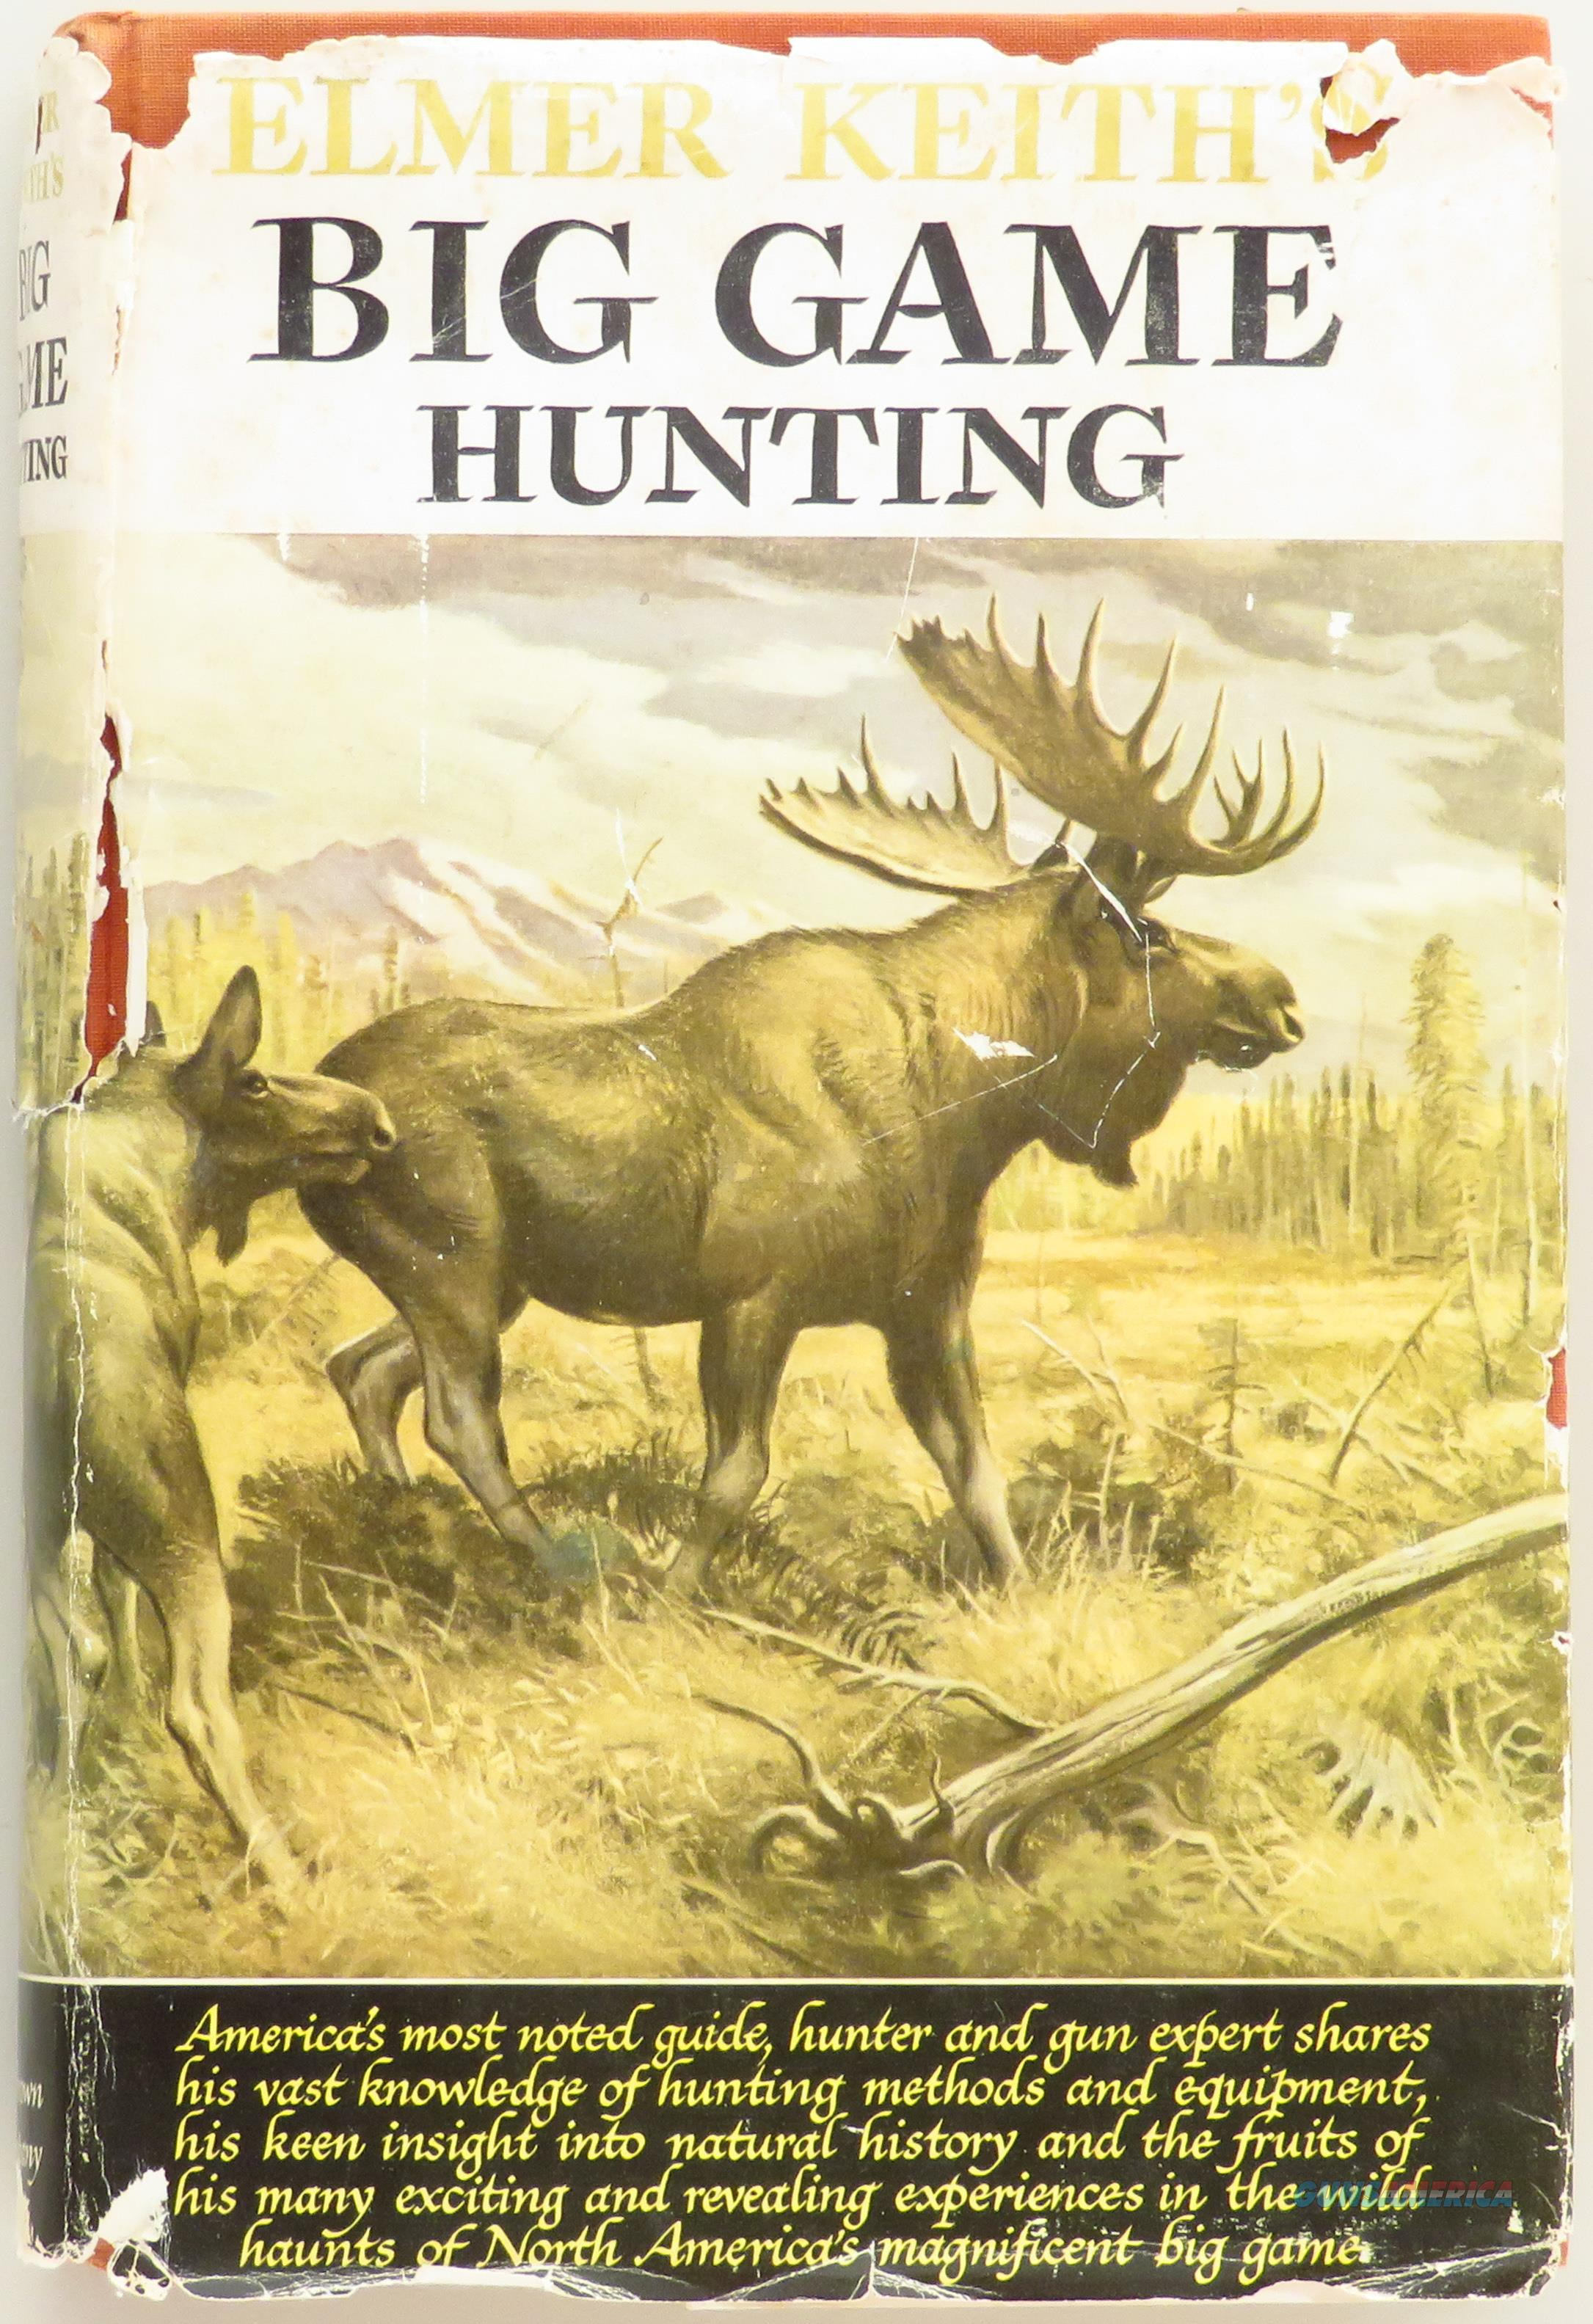 Elmer Keith's Big Game Hunting, Elmer Keith, 1954 second edition  Non-Guns > Books & Magazines